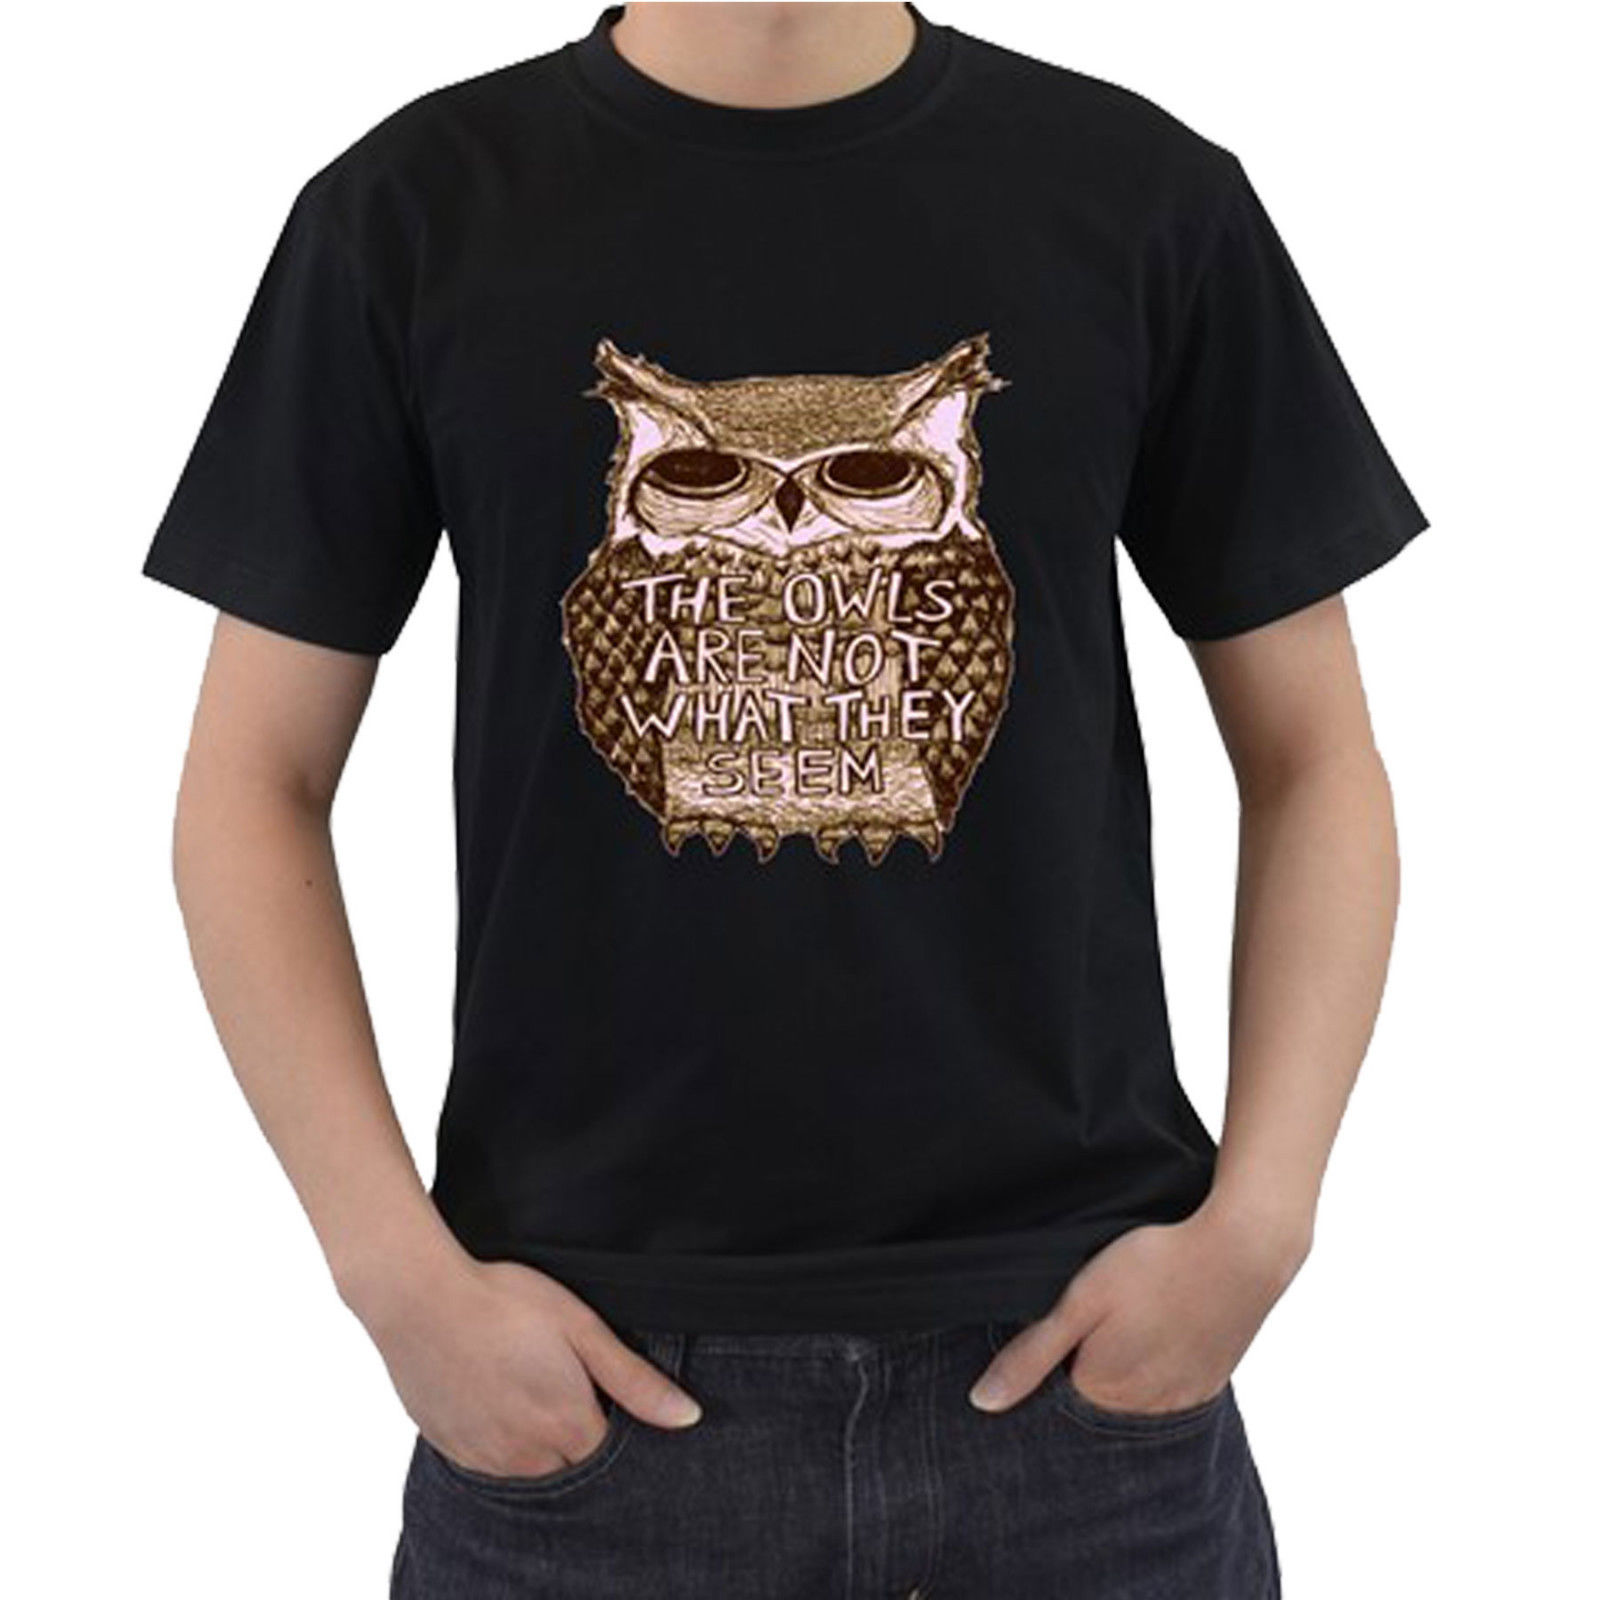 TWIN PEAKS TV Show The Owls Are Not What They Seem Casual Short Sleeve T shirt Novelty